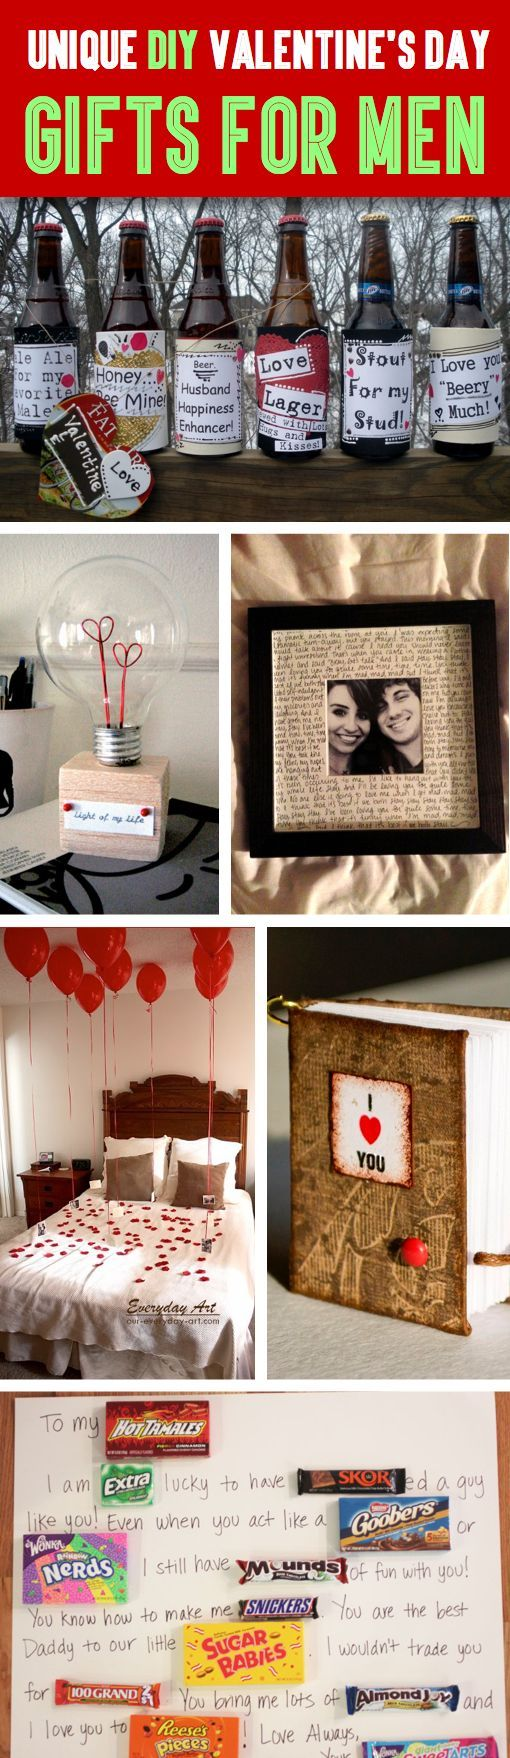 35+ Unique DIY Valentine's Day Gifts For Men | Valentine ideas ...